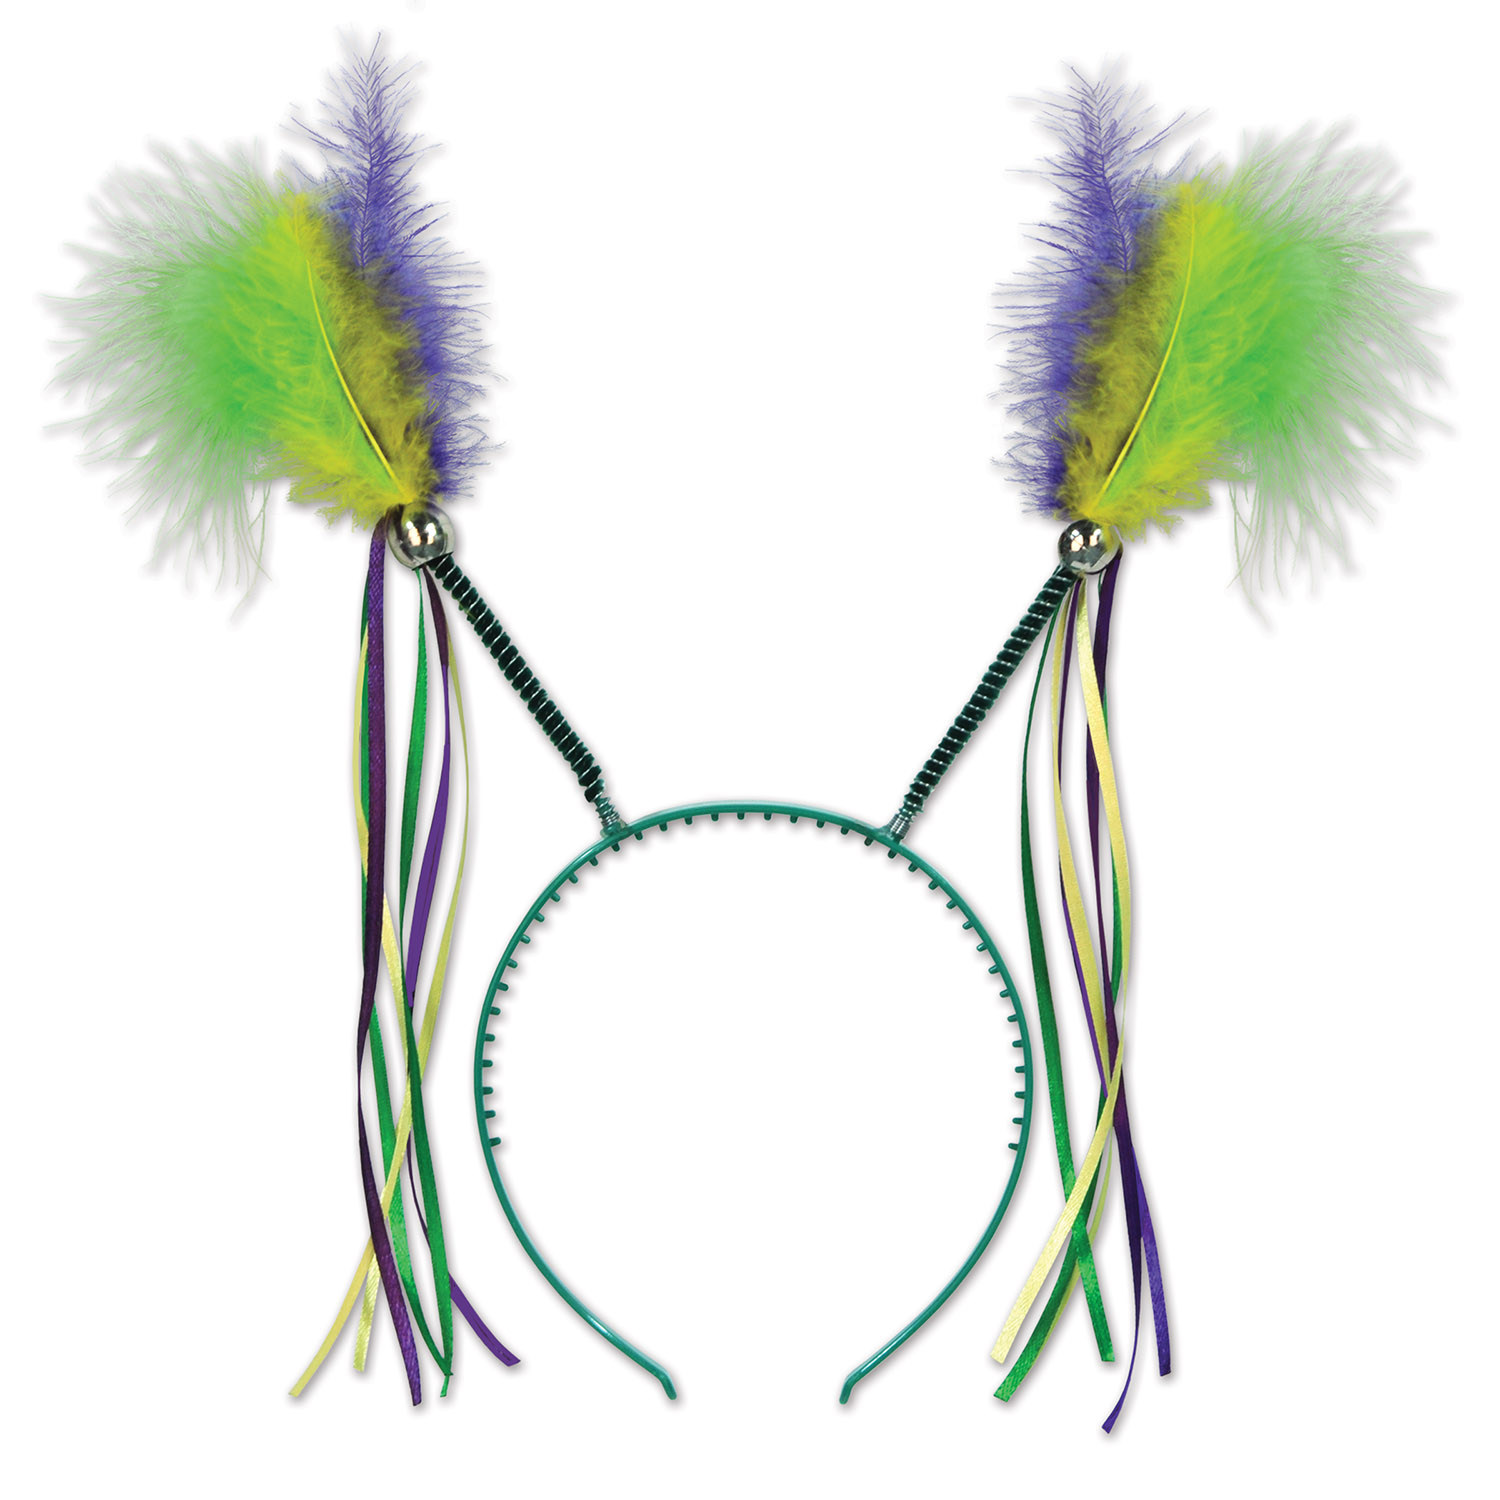 Feathers & Ribbons Mardi Gras Boppers (Pack of 12) Mardi Gras, feathers, ribbon, boppers, headband